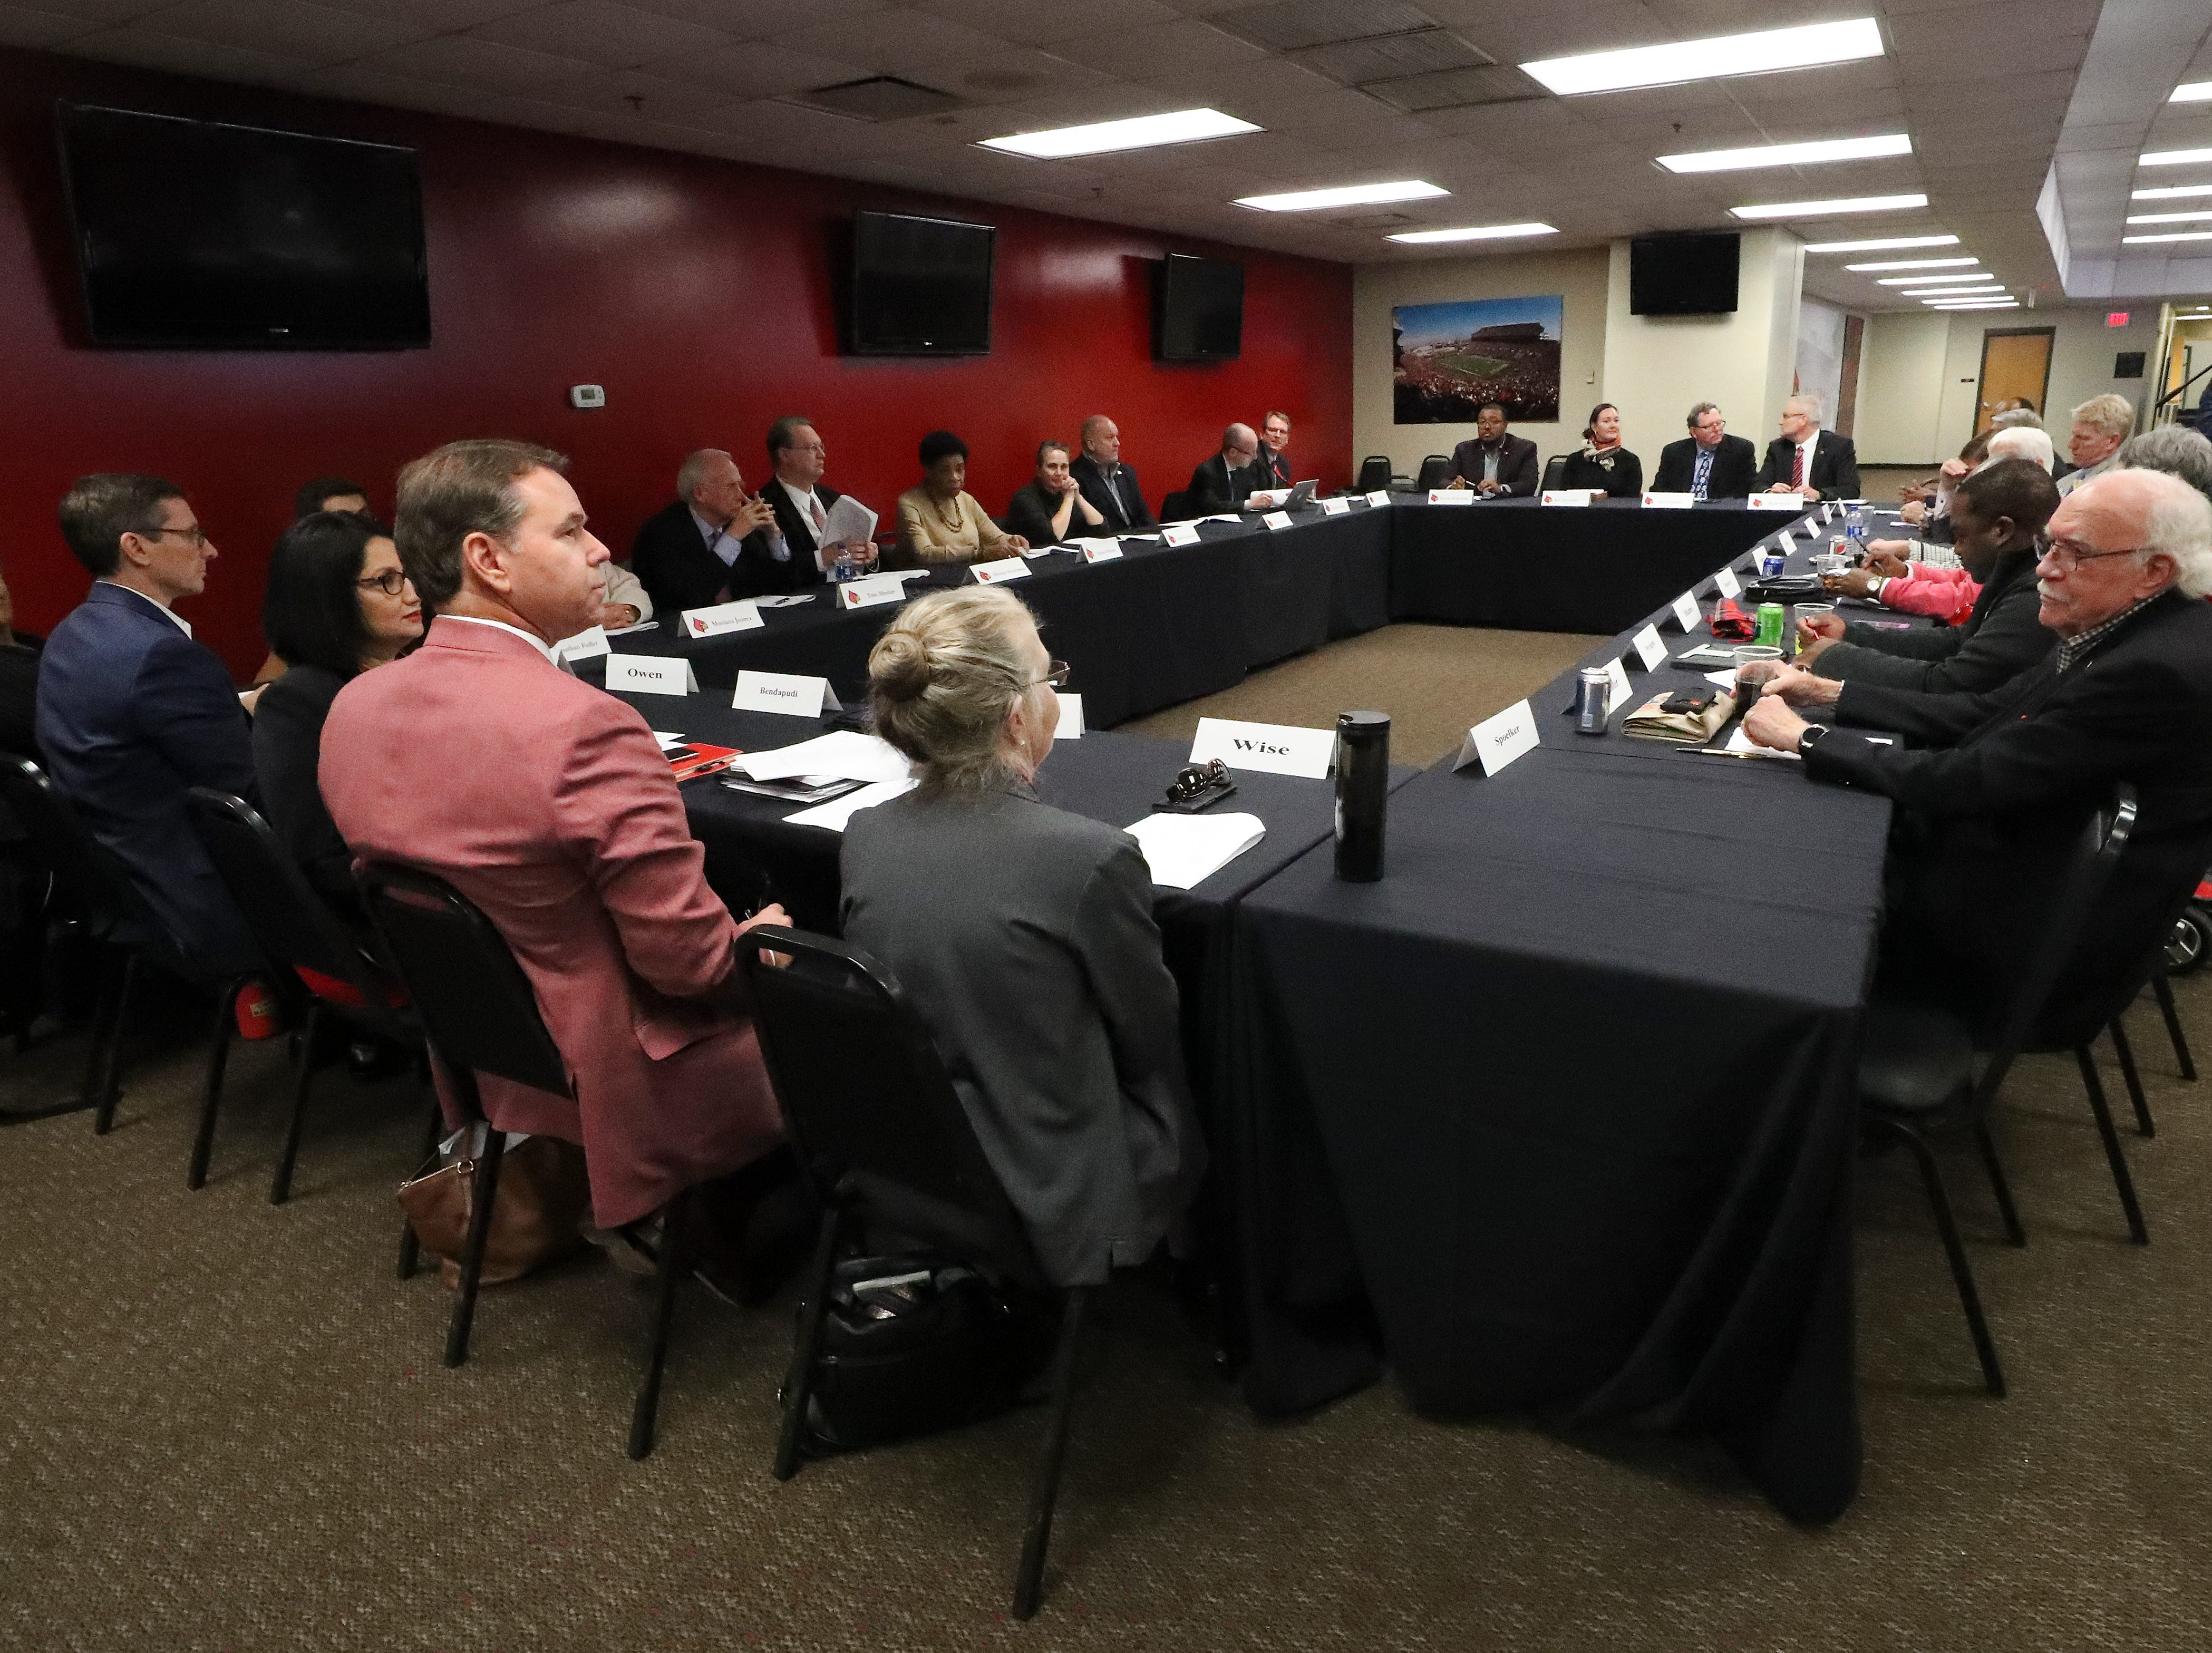 The University of Louisville Athletic Association met before approving Scott Satterfield as the new U of L head football coach at Cardinal Stadium.  